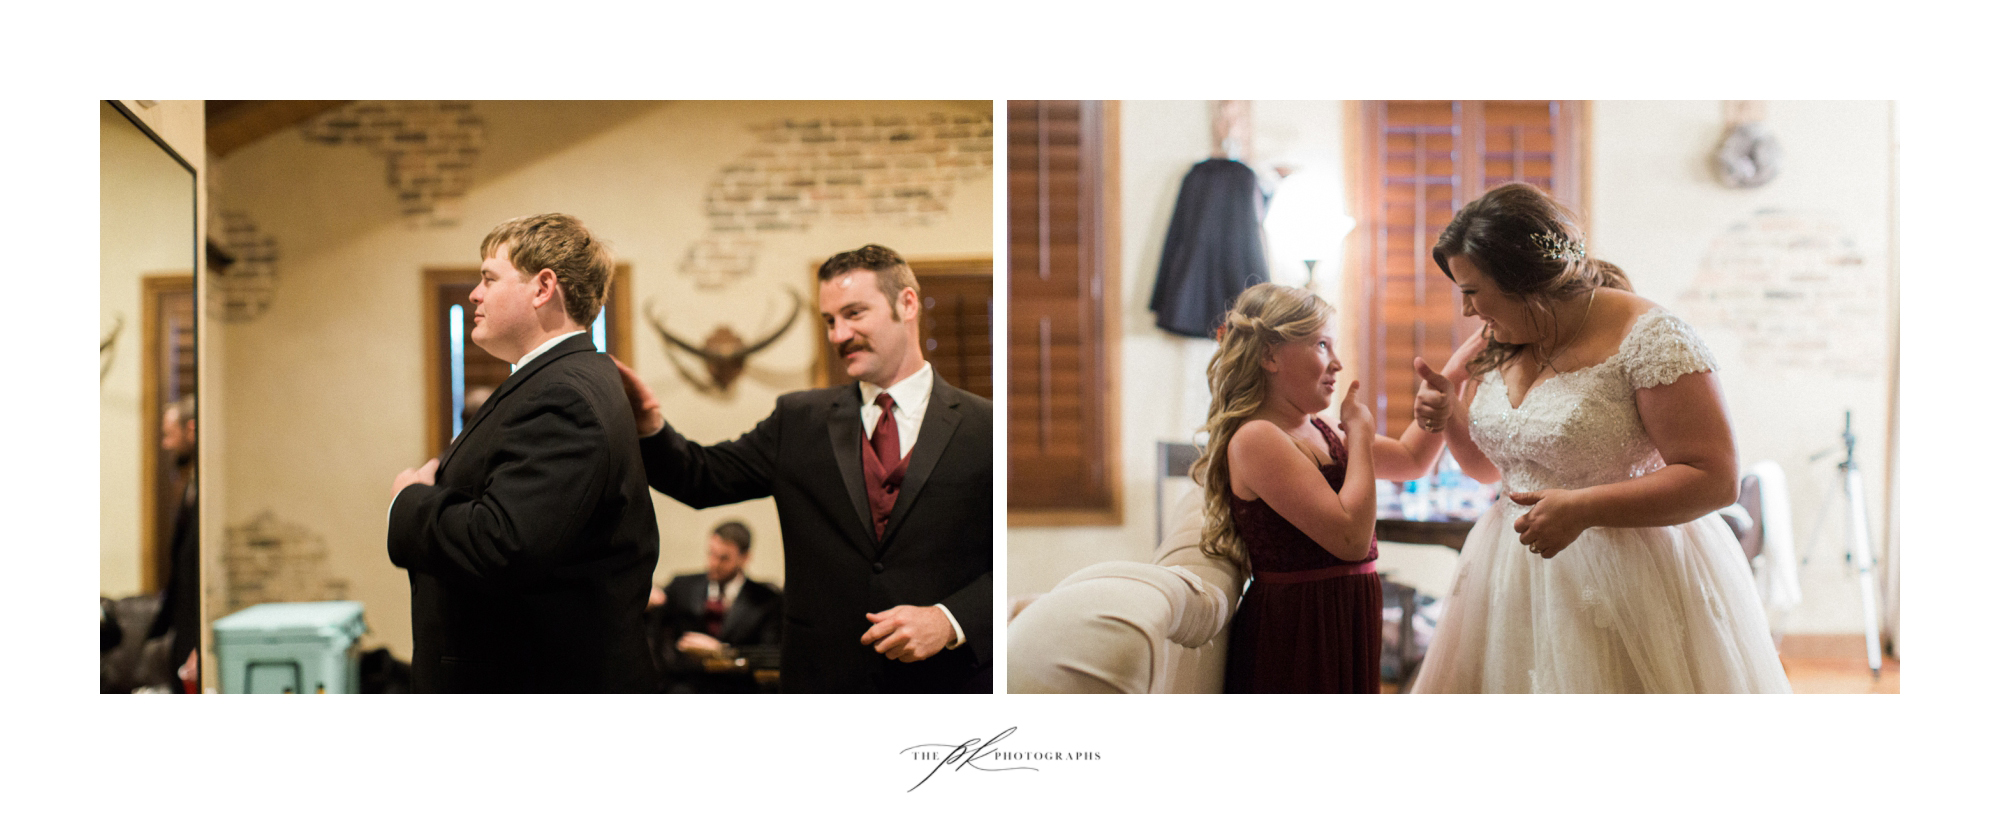 Emily and Lamar both soothed their pre-wedding jitters with a bit of encouragement and support.